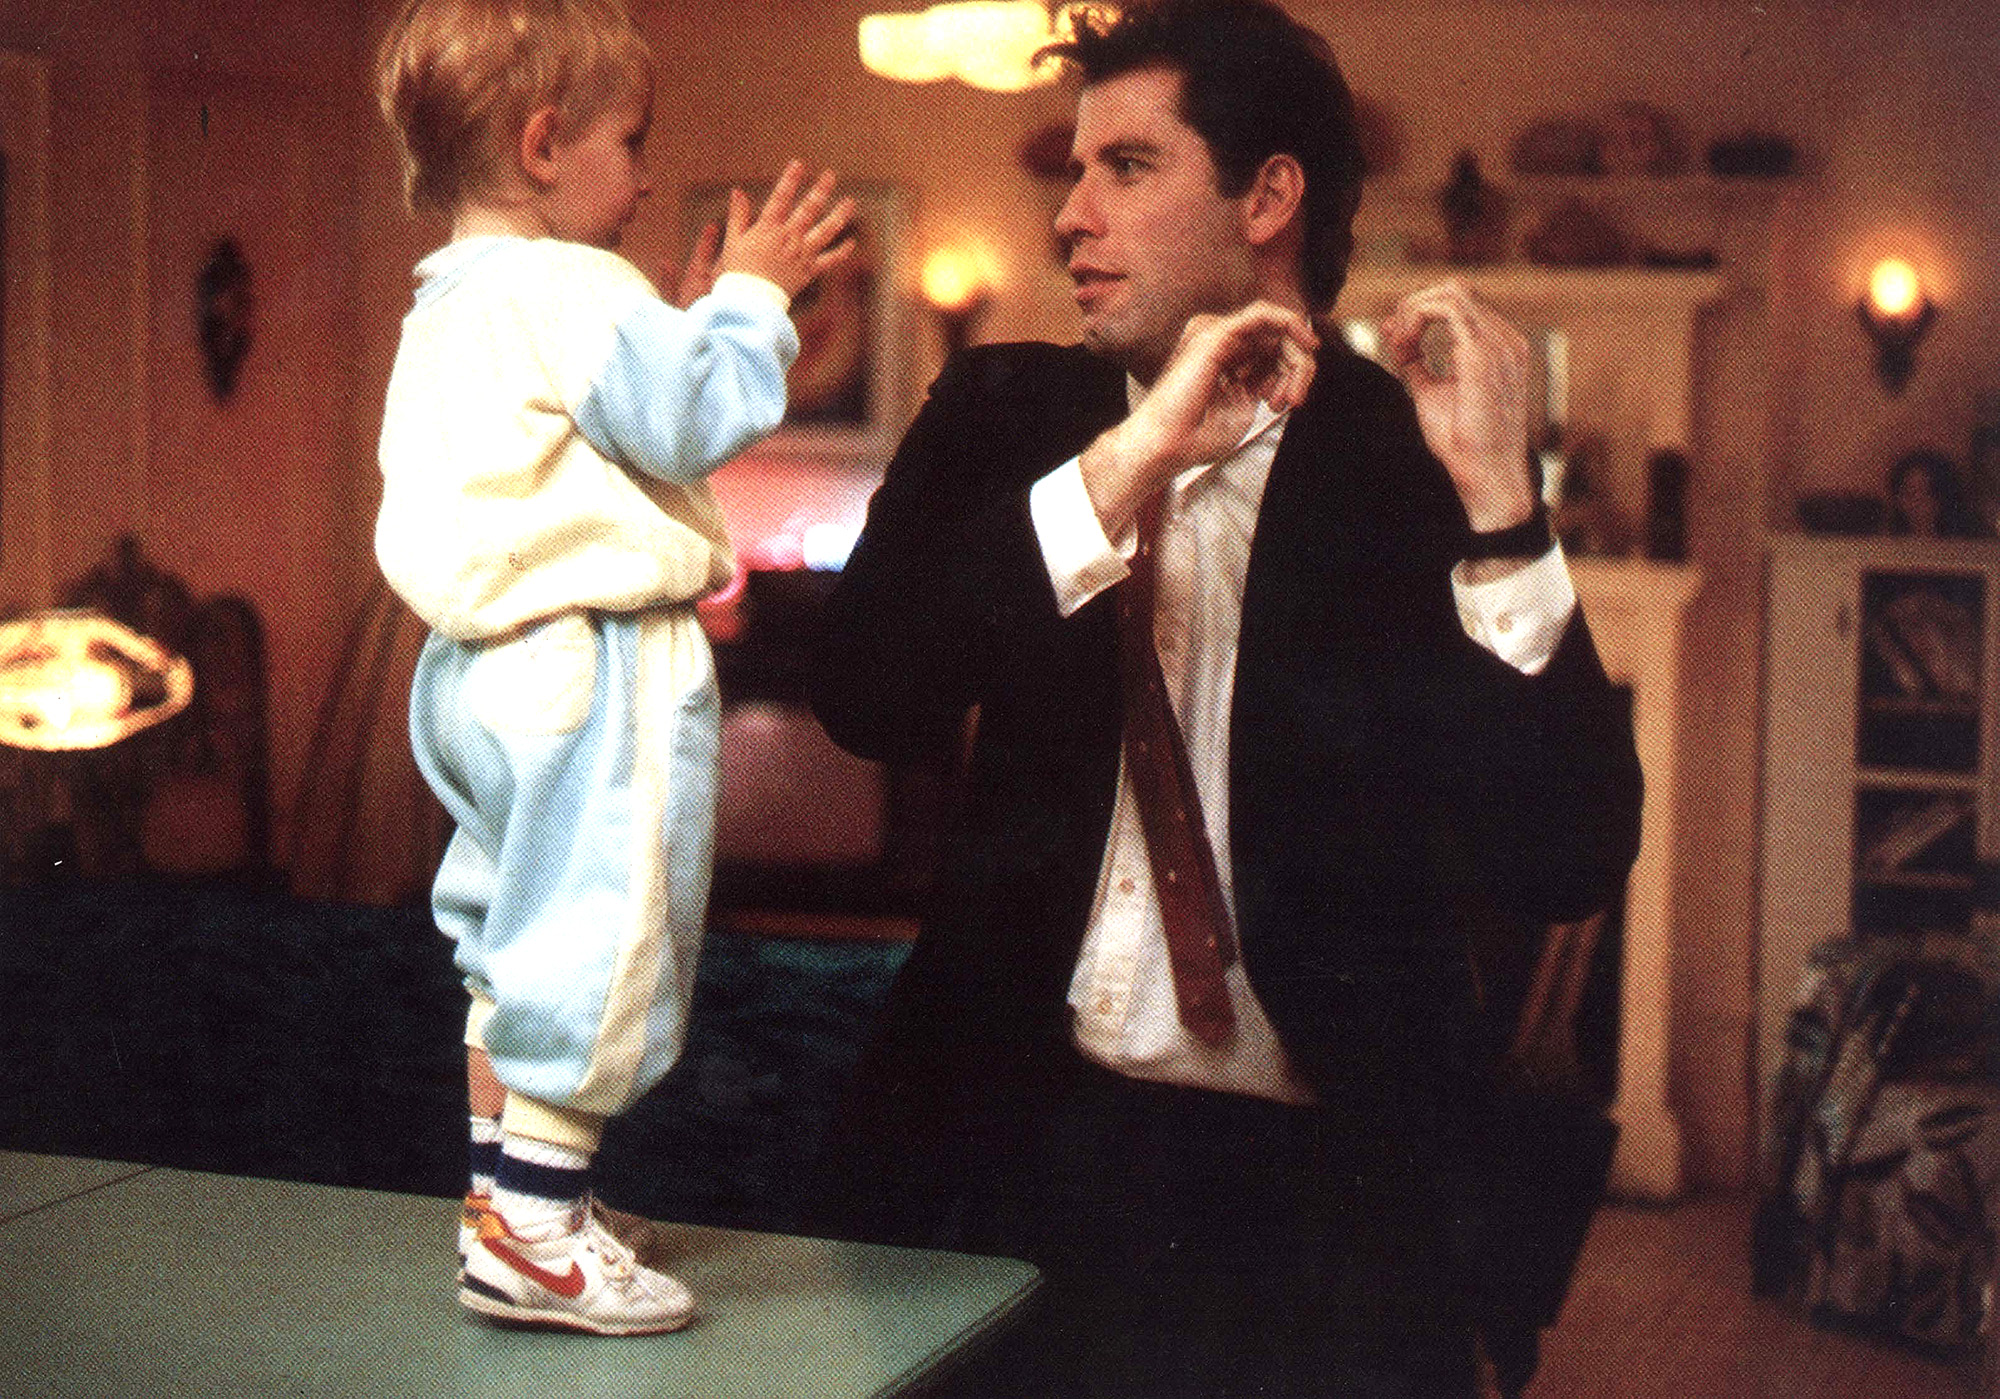 John Travolta in Look Who's Talking, costumes by Molly Maginnis